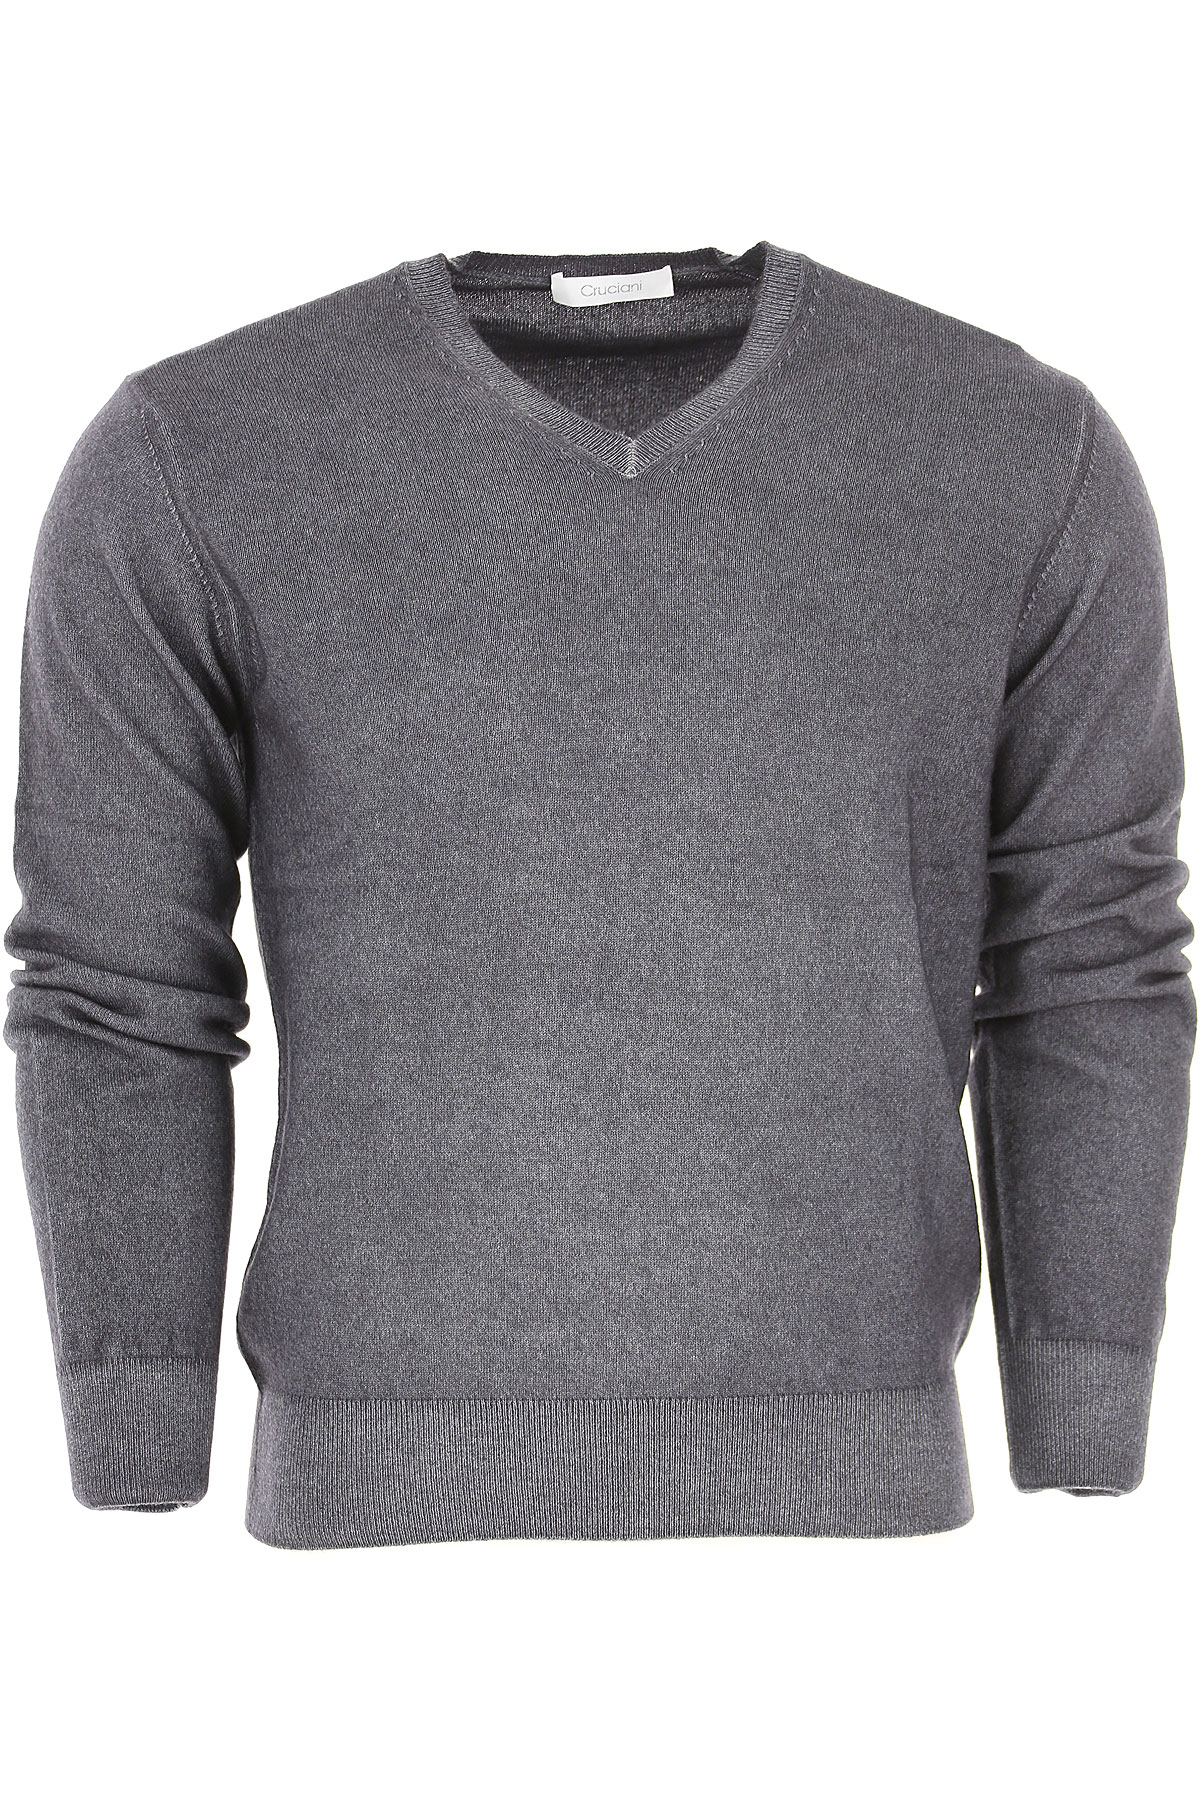 Image of Cruciani Sweater for Men Jumper, Anthracite, Cashemere, 2017, L M XL